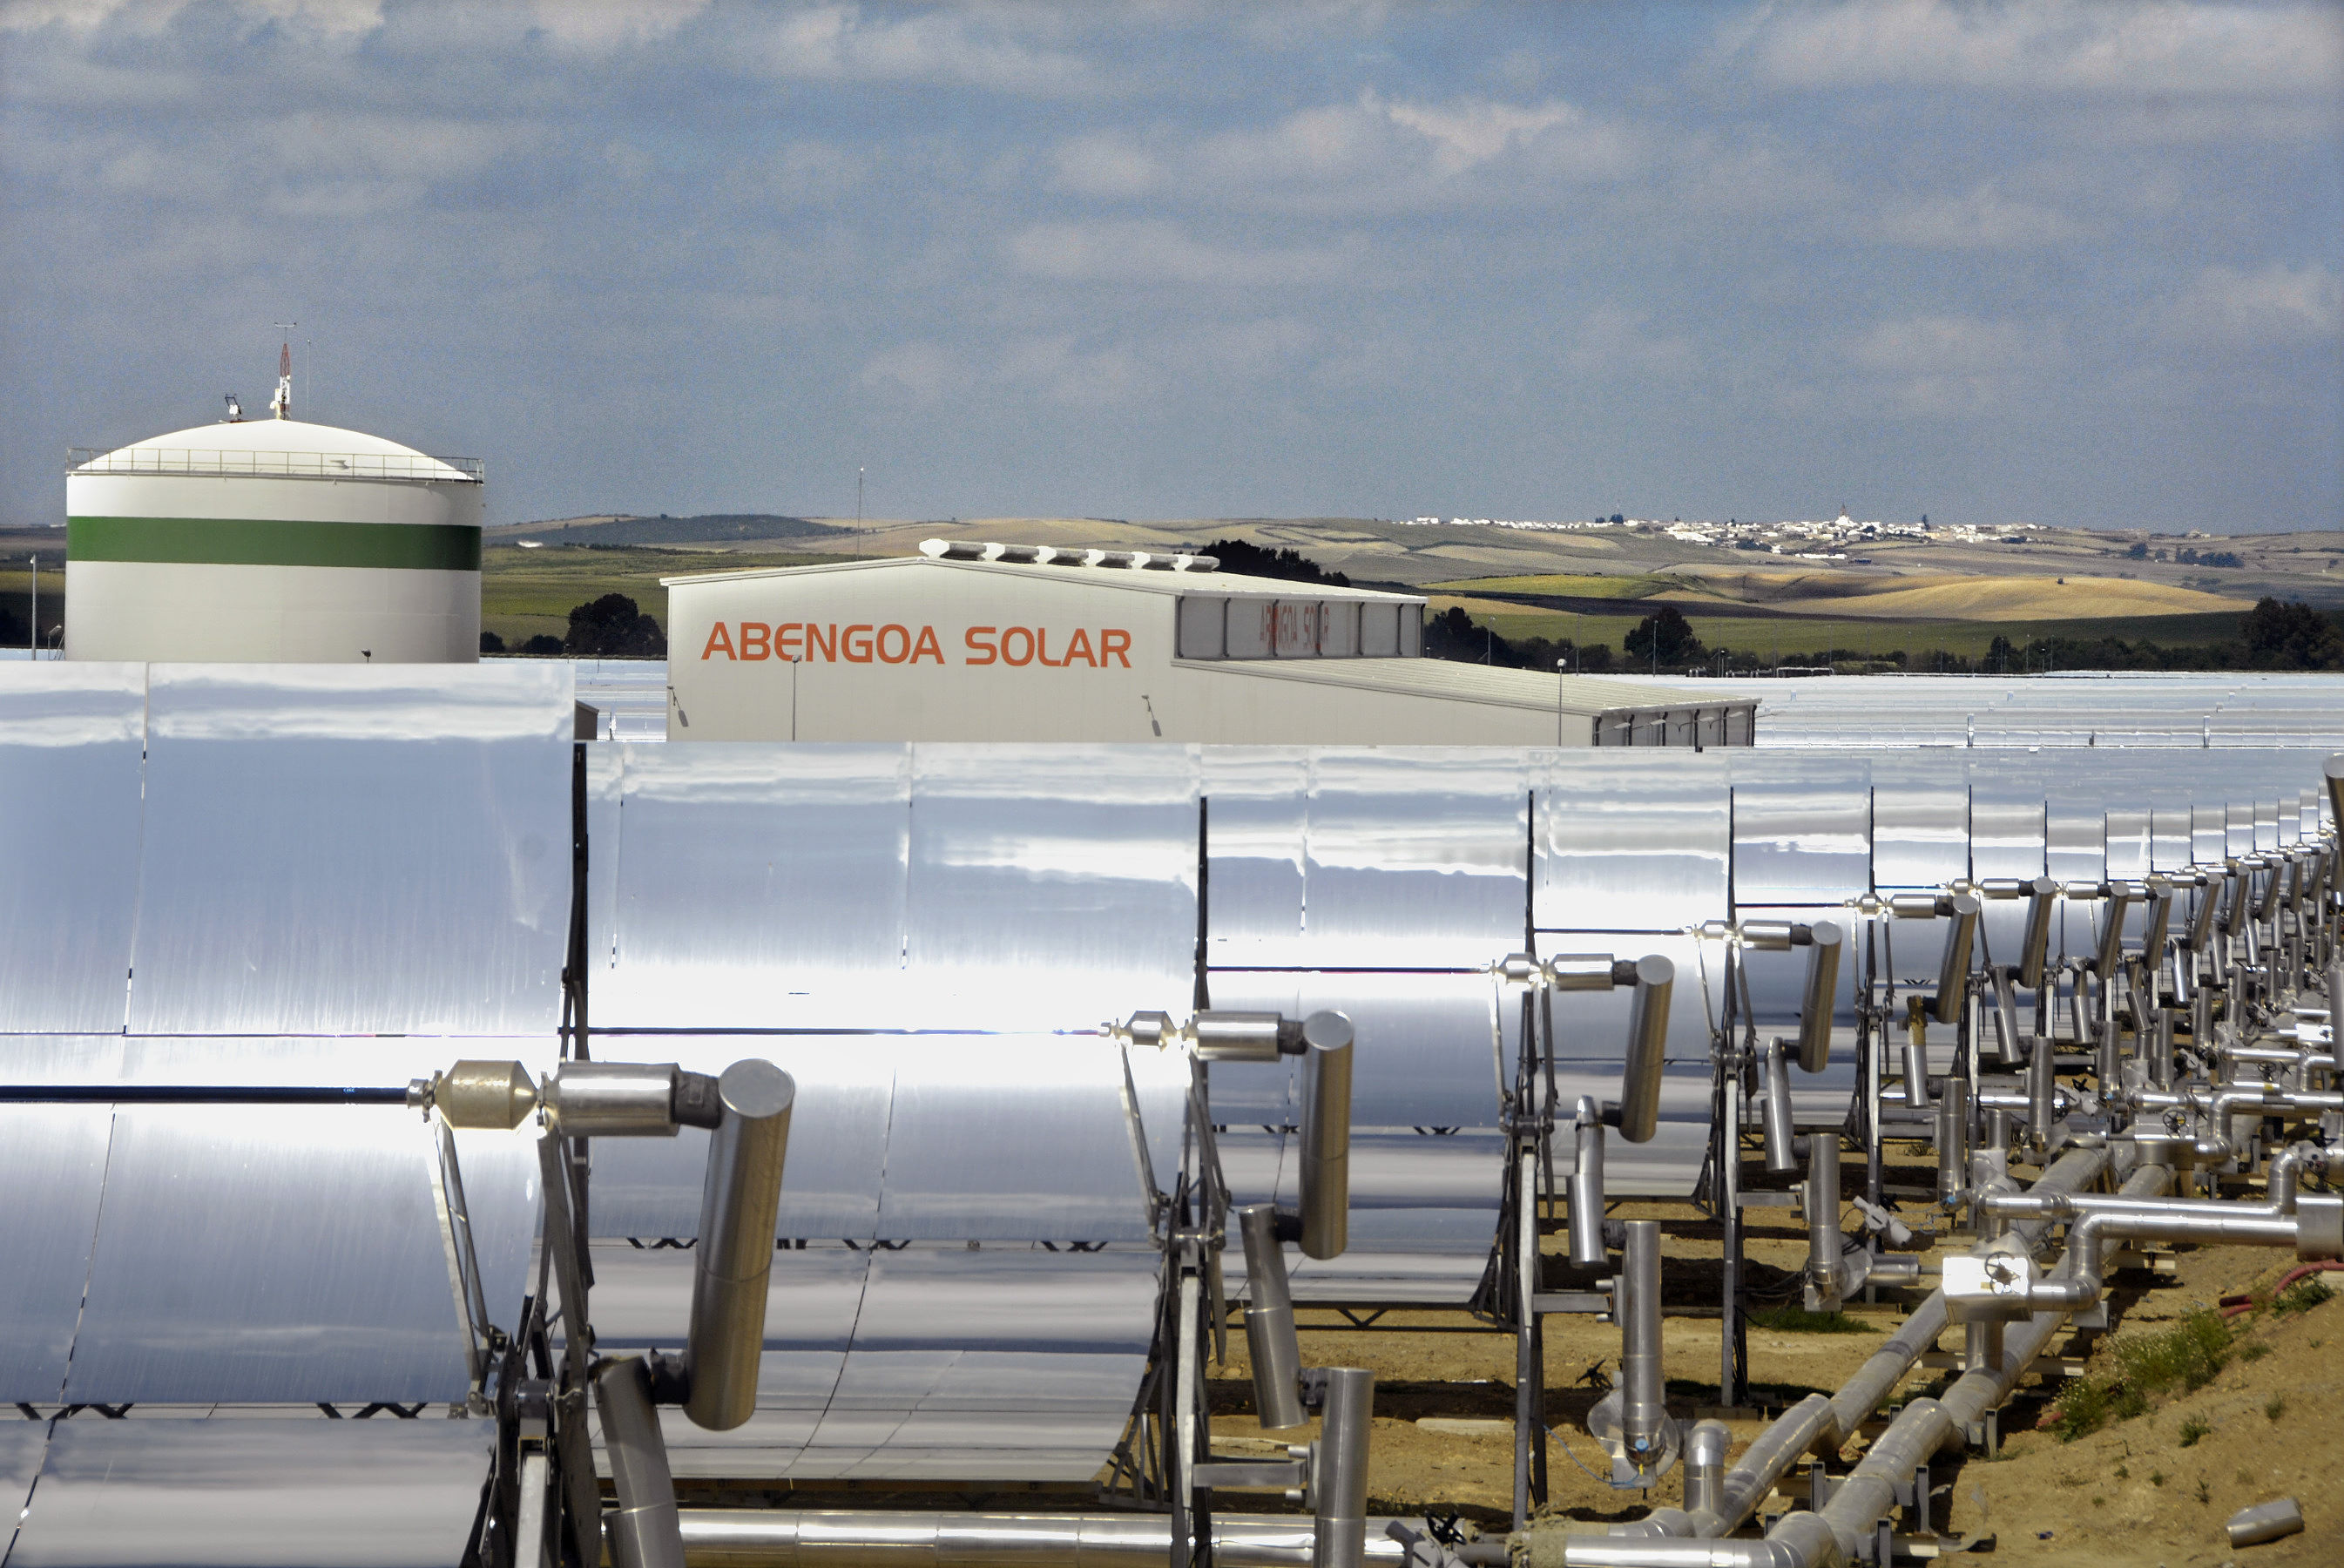 http://www.evwind.es/wp-content/uploads/2012/07/Abengoa-Solar-worlds-largest-concentrated-solar-thermal-plant.jpg